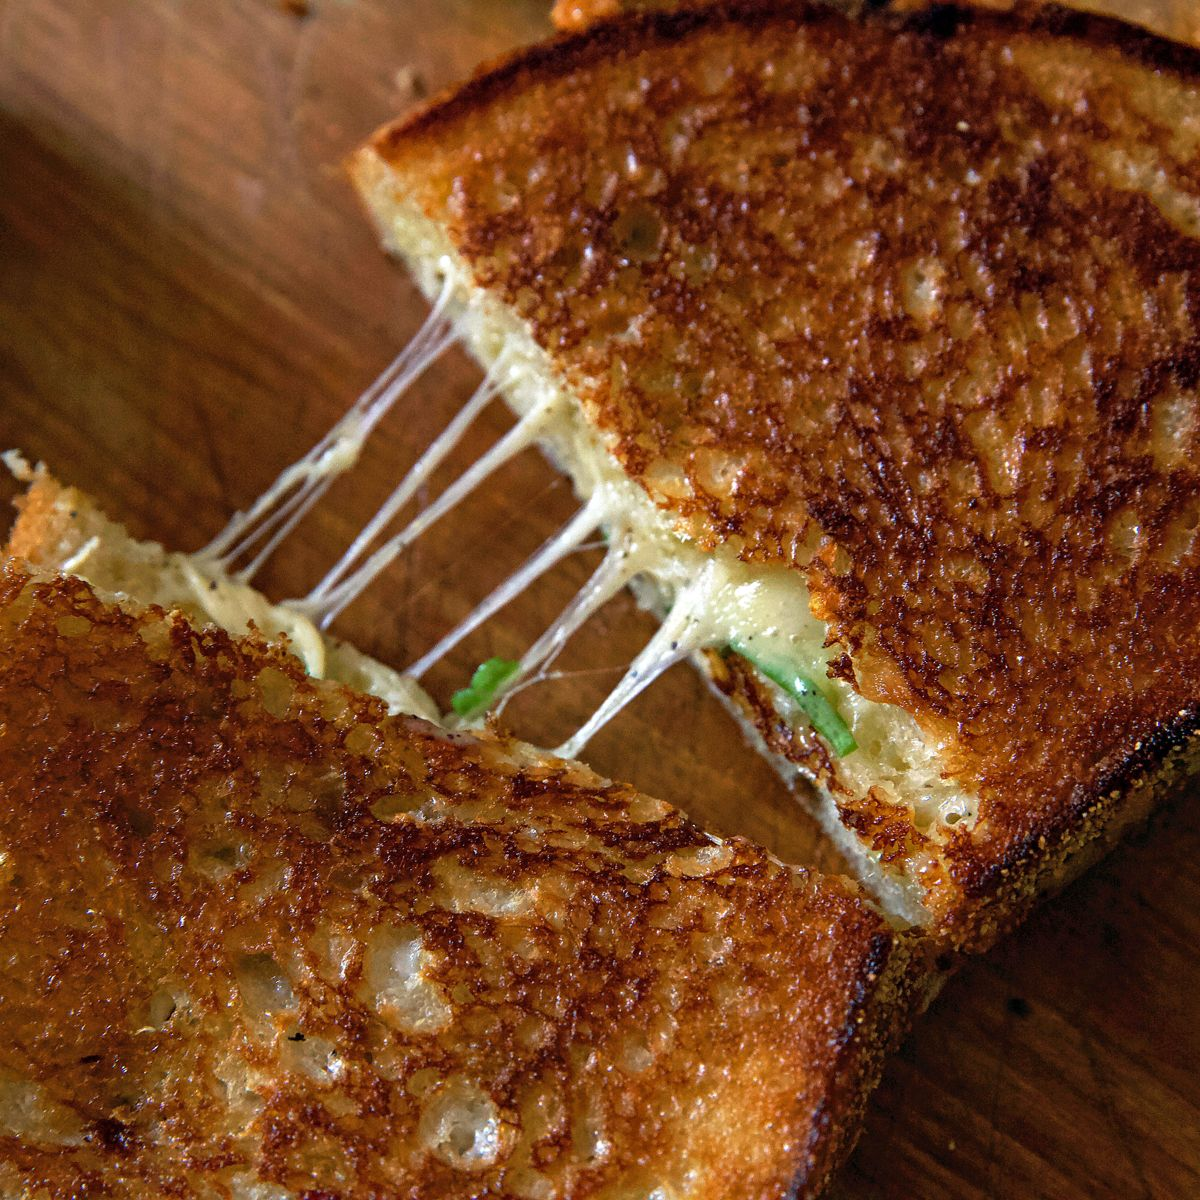 Cinder Grill Panini Press Grilled Cheese Recipe